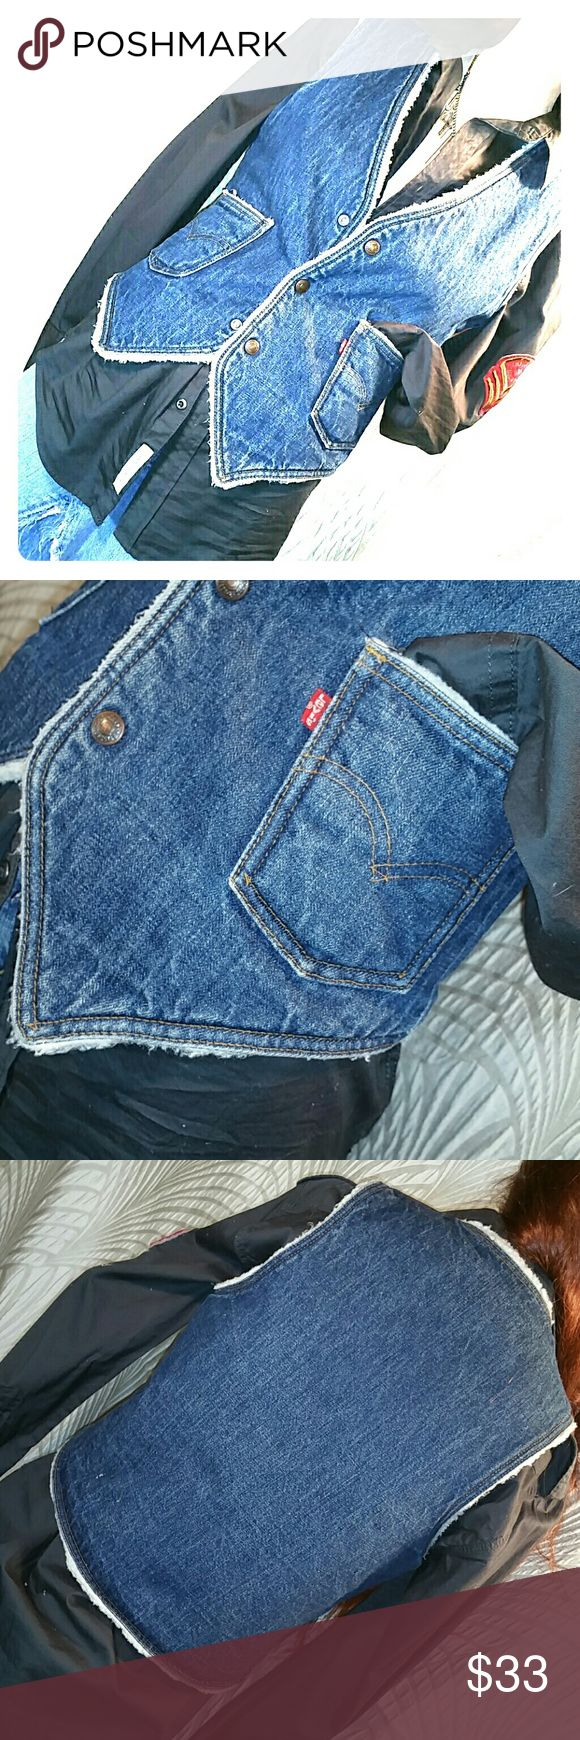 """Vintage Levis Vest Faux shearling lined jean vest. Front pockets. Dark blue denim with authentic """"train track"""" fading at seams. Not sure how old it is but guessing 1970s. Cotton shell, poly-acrylic """"shearling"""" Men's small, will measure on request Levi's Jackets & Coats Vests"""